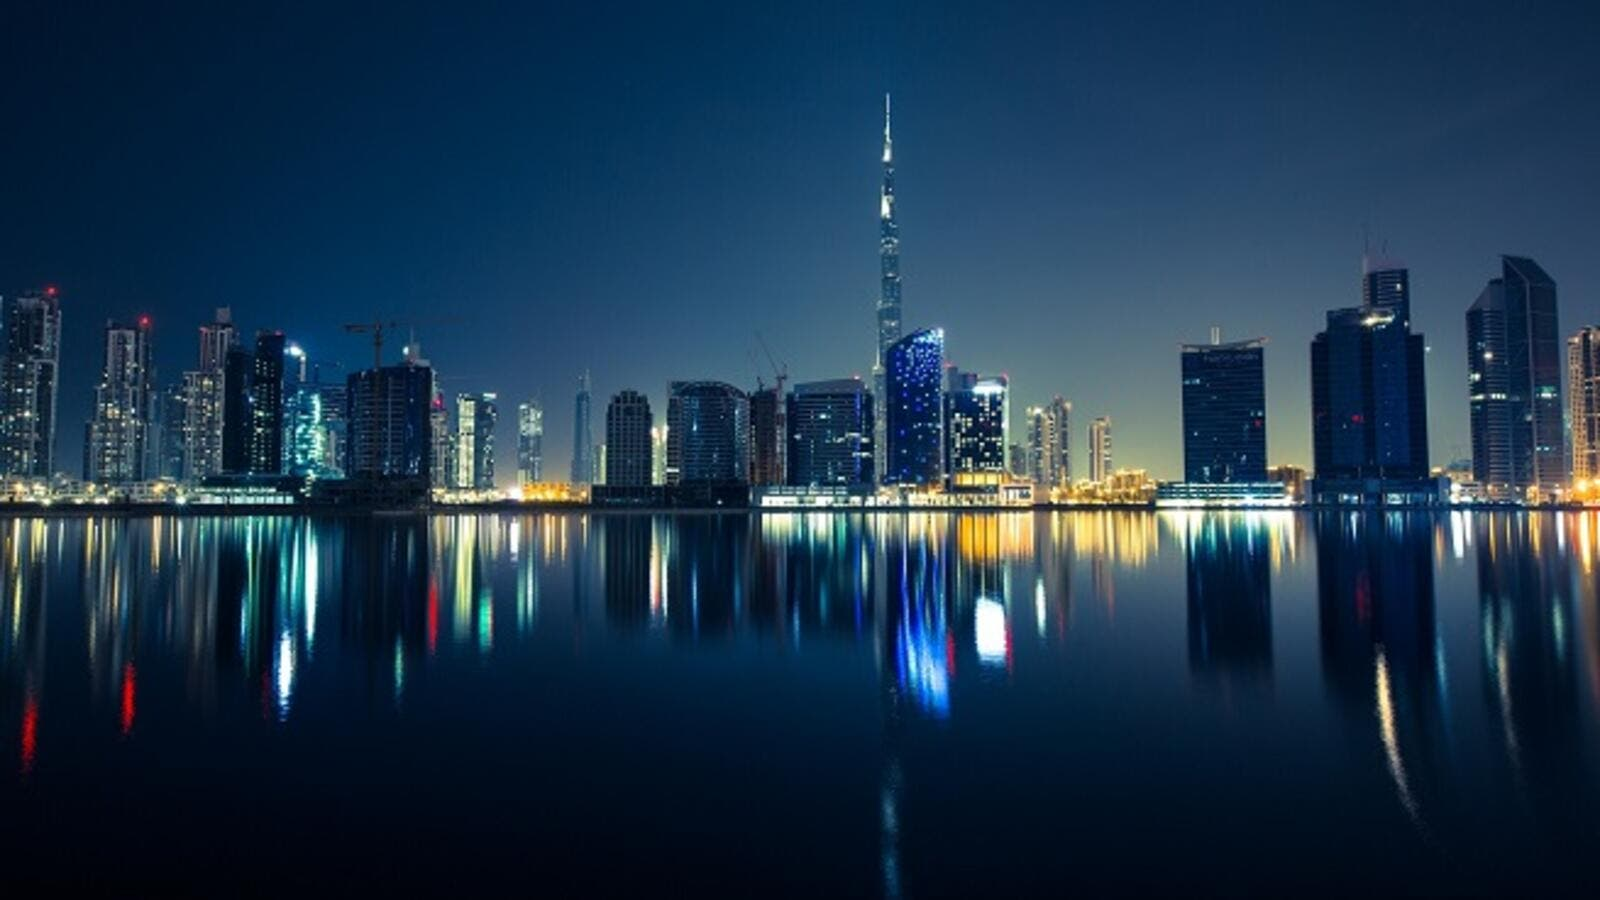 As the 2020 Expo approaches, the Dubai economy is showing signs of rebounding. (Pixabay)